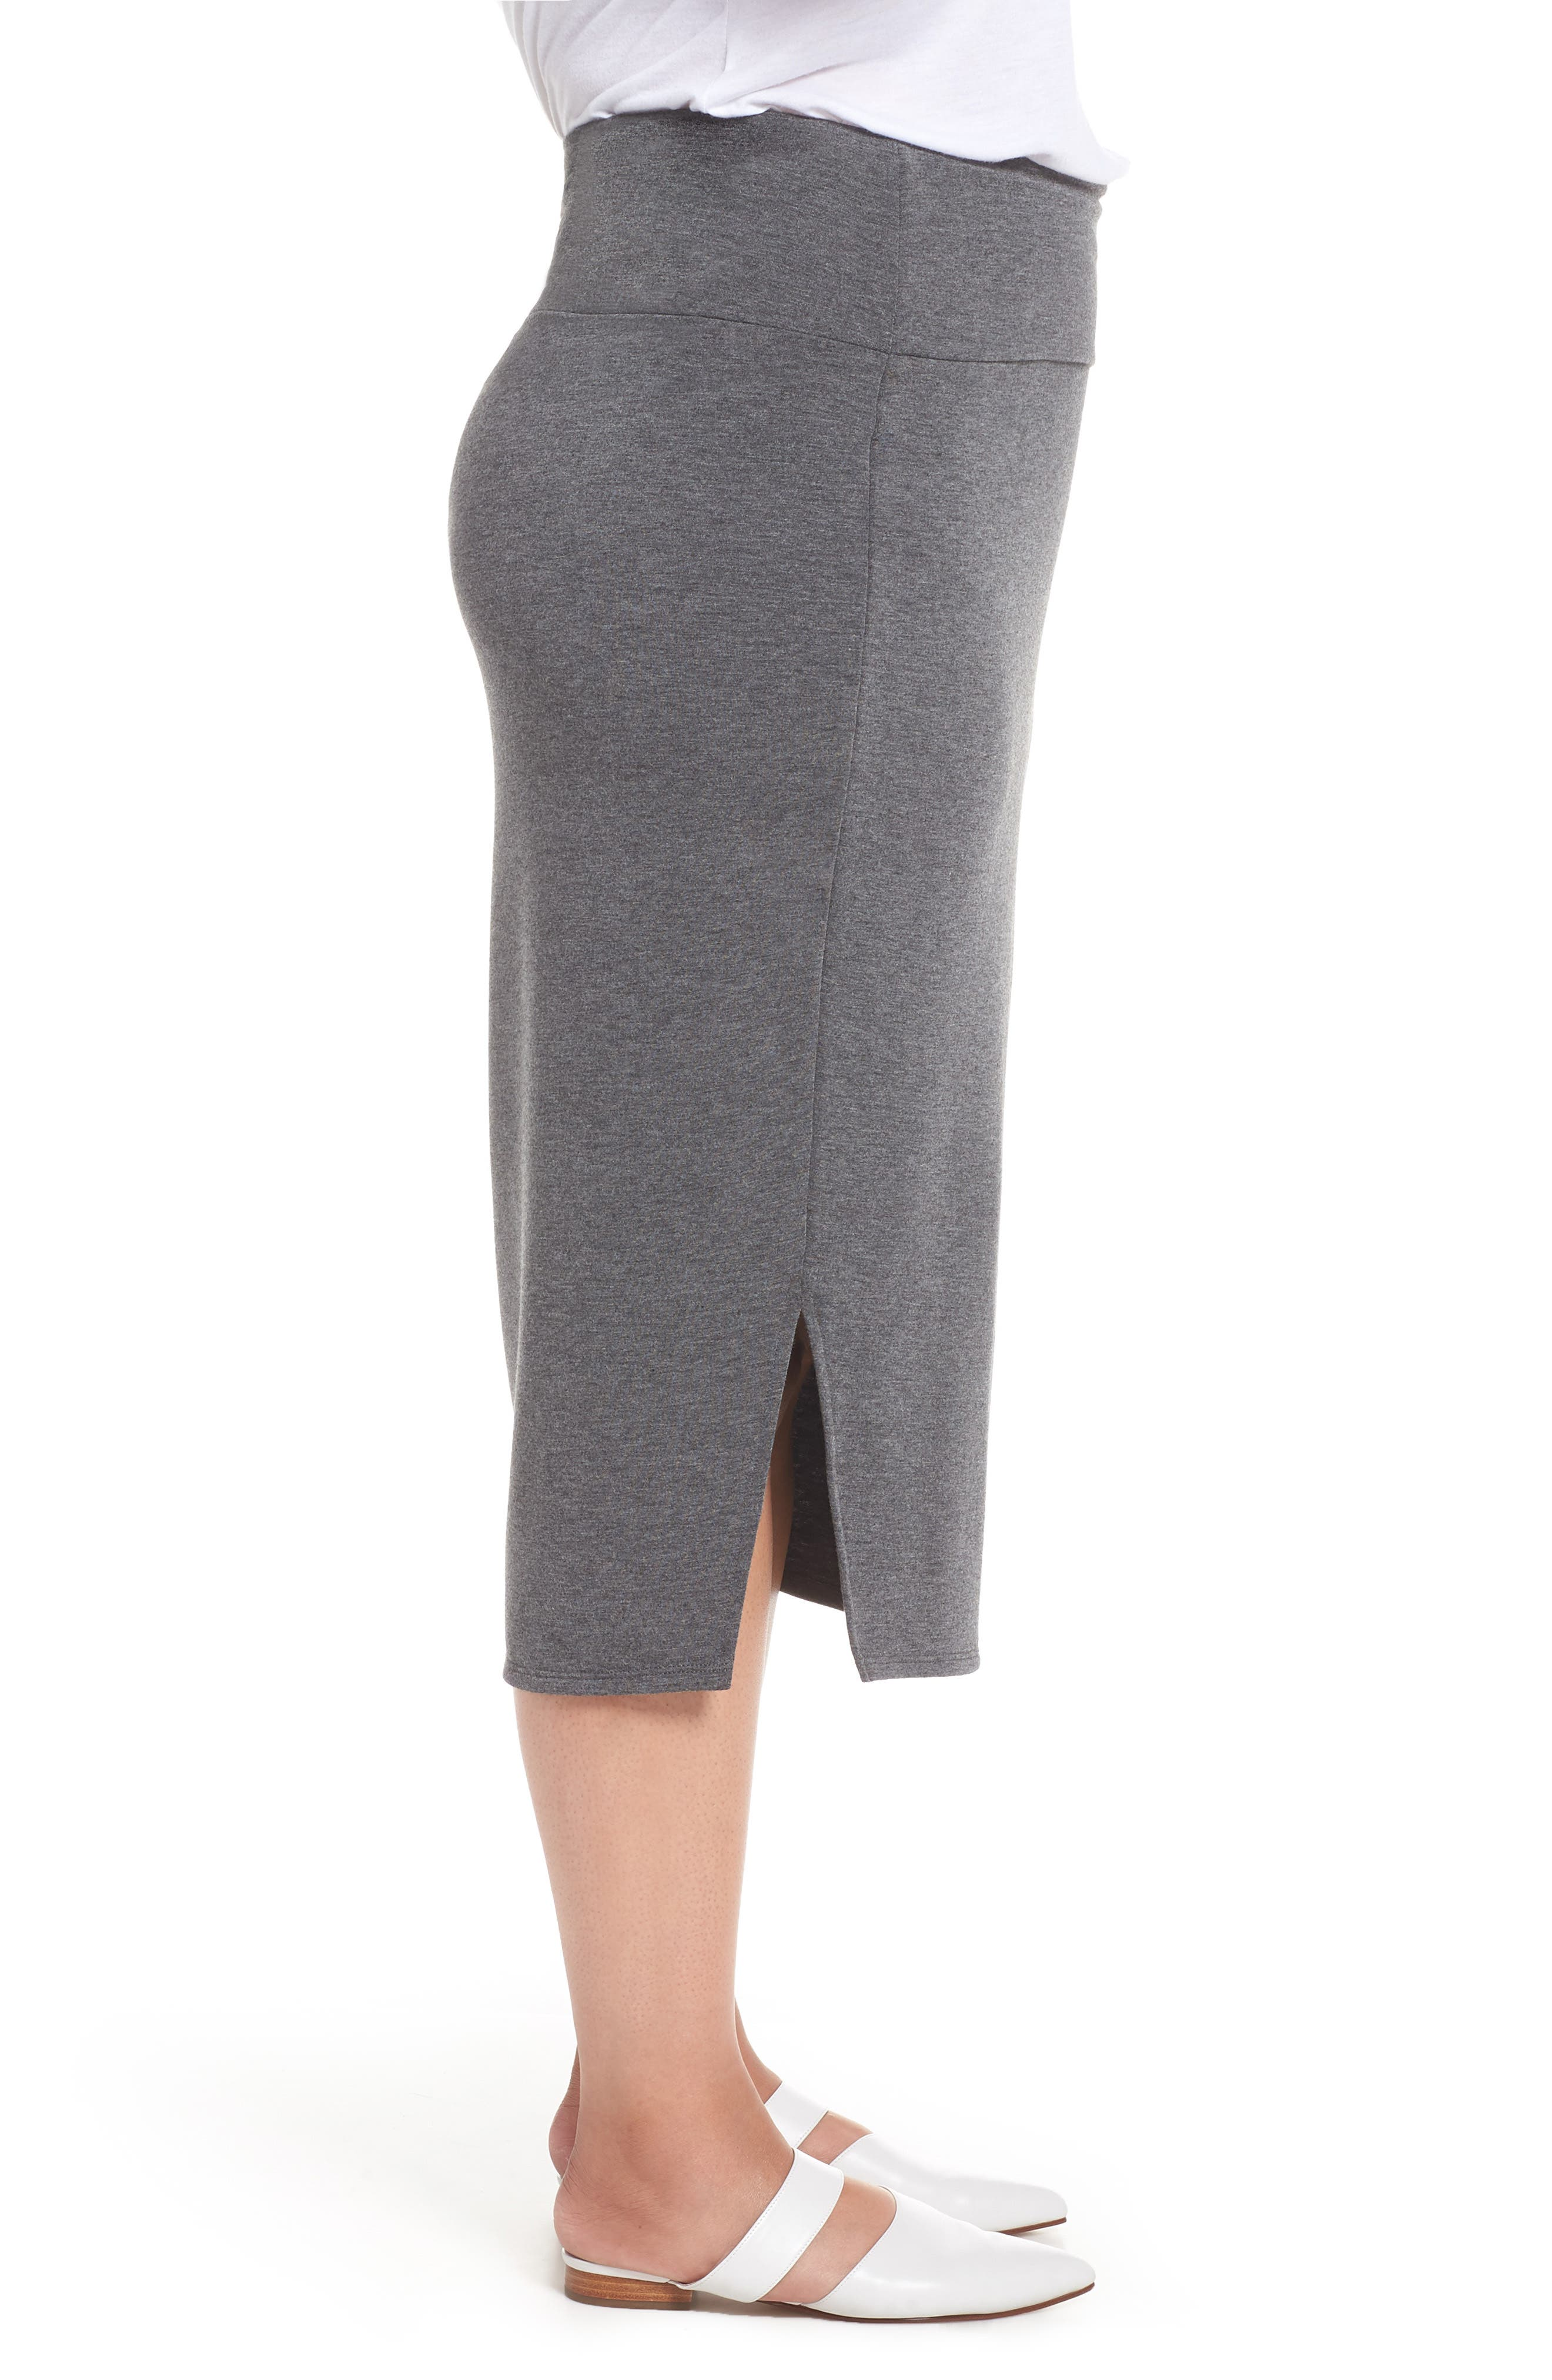 Off Duty Knit Skirt,                             Alternate thumbnail 3, color,                             GREY DARK CHARCOAL HEATHER